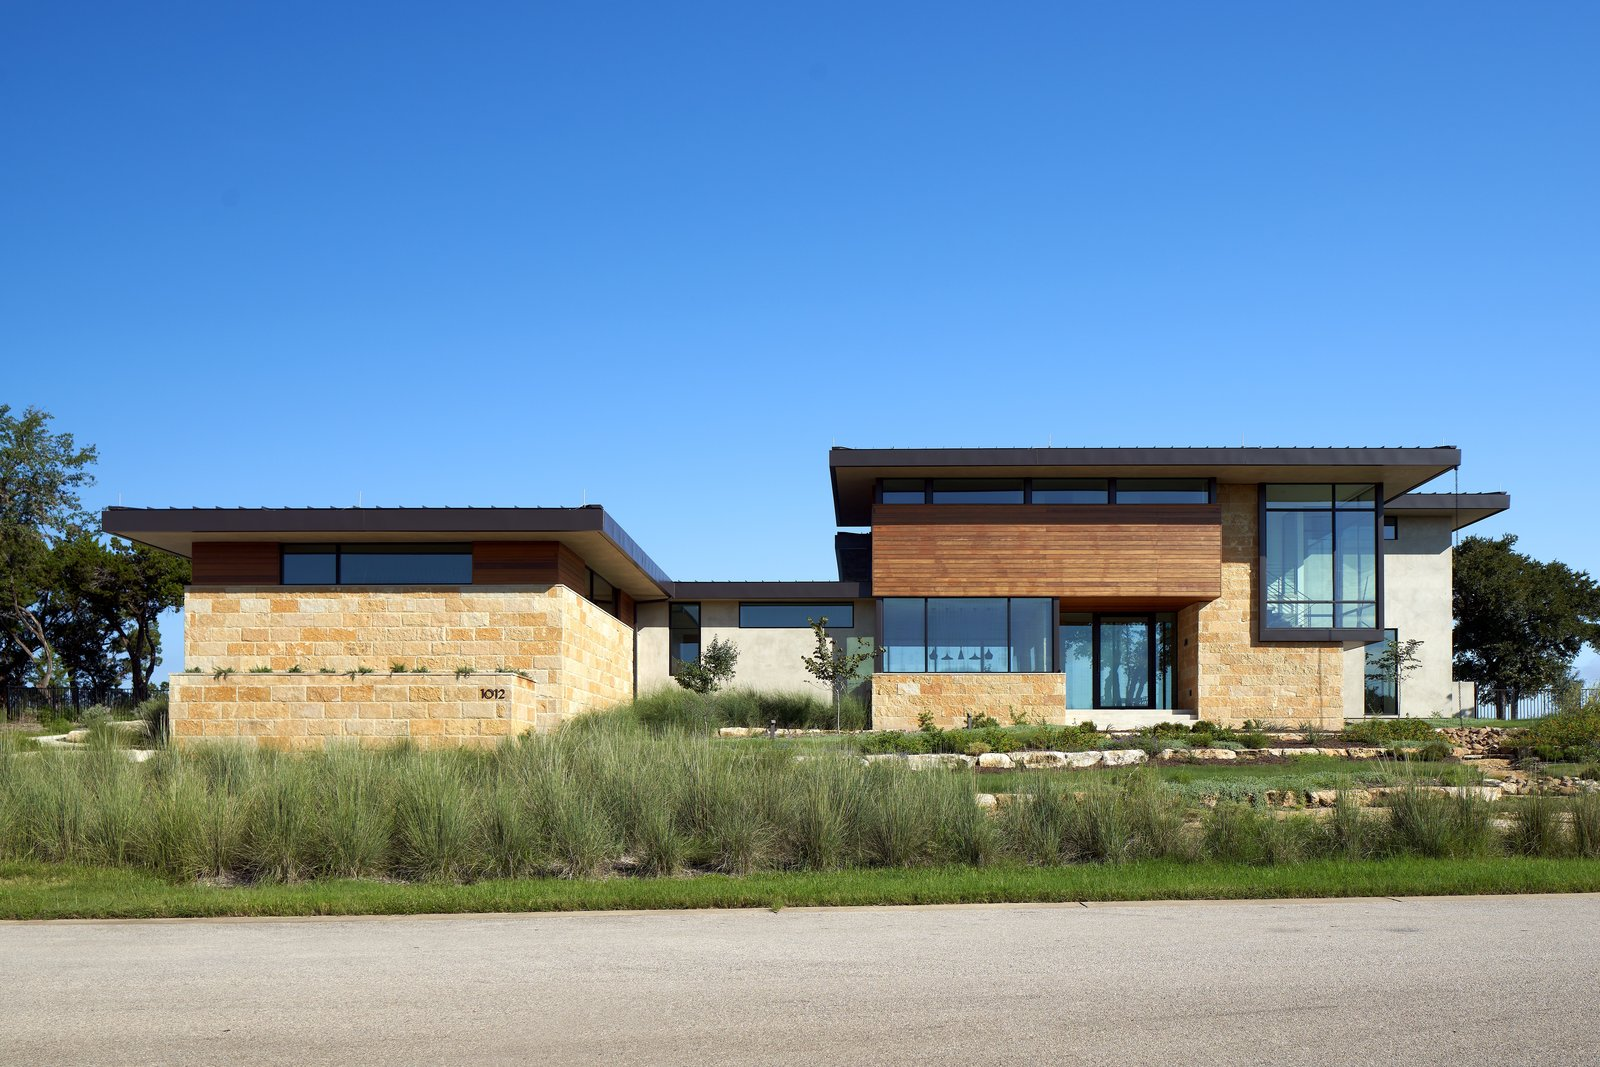 Exterior, Hipped, Stucco, Metal, Wood, Gable, House, and Stone Lago Vista by Dick Clark + Associates  Exterior Hipped Photos from Lago Vista